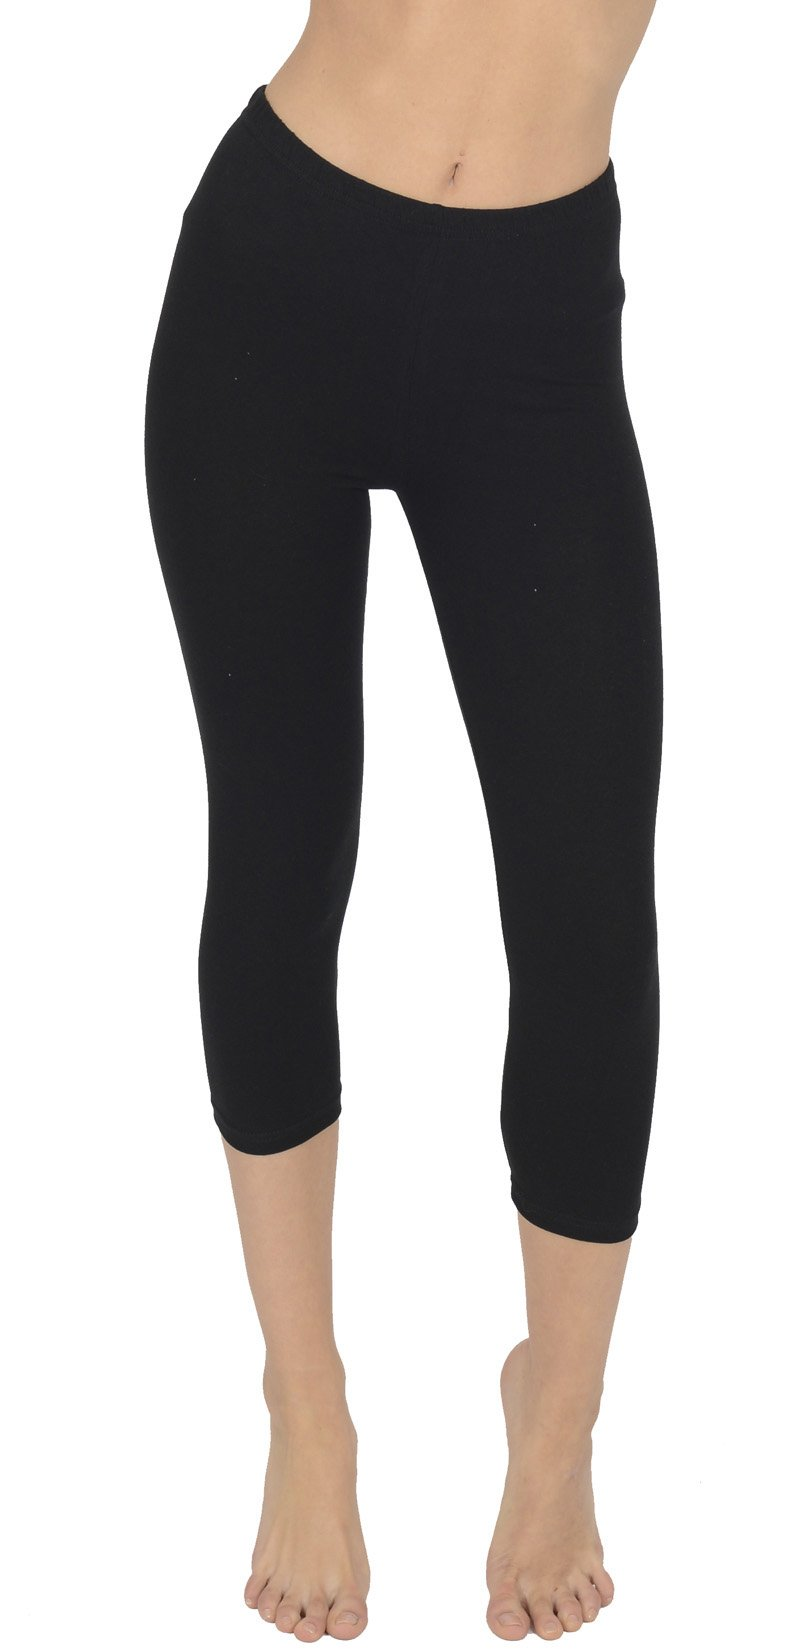 Today Is Her Women's Cropped 3/4 Soft Cotton Leggings, Plus Sizes, Extra Comfort Range - Size 12 Black